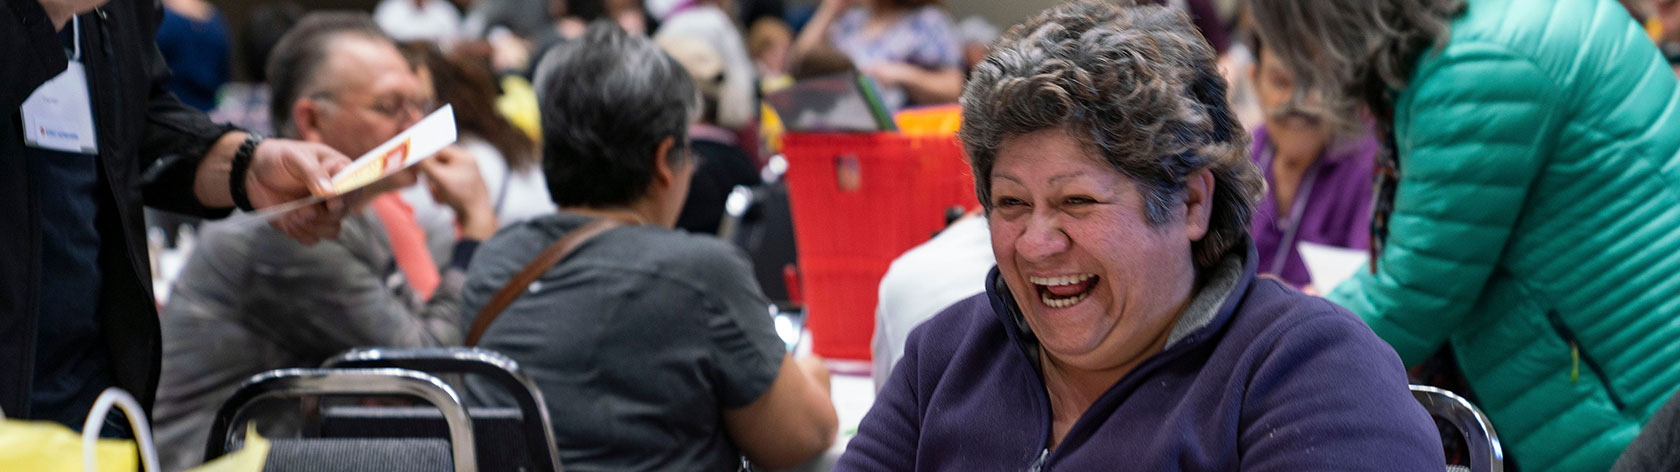 Joyful attendee laughs with fellow attendees at table